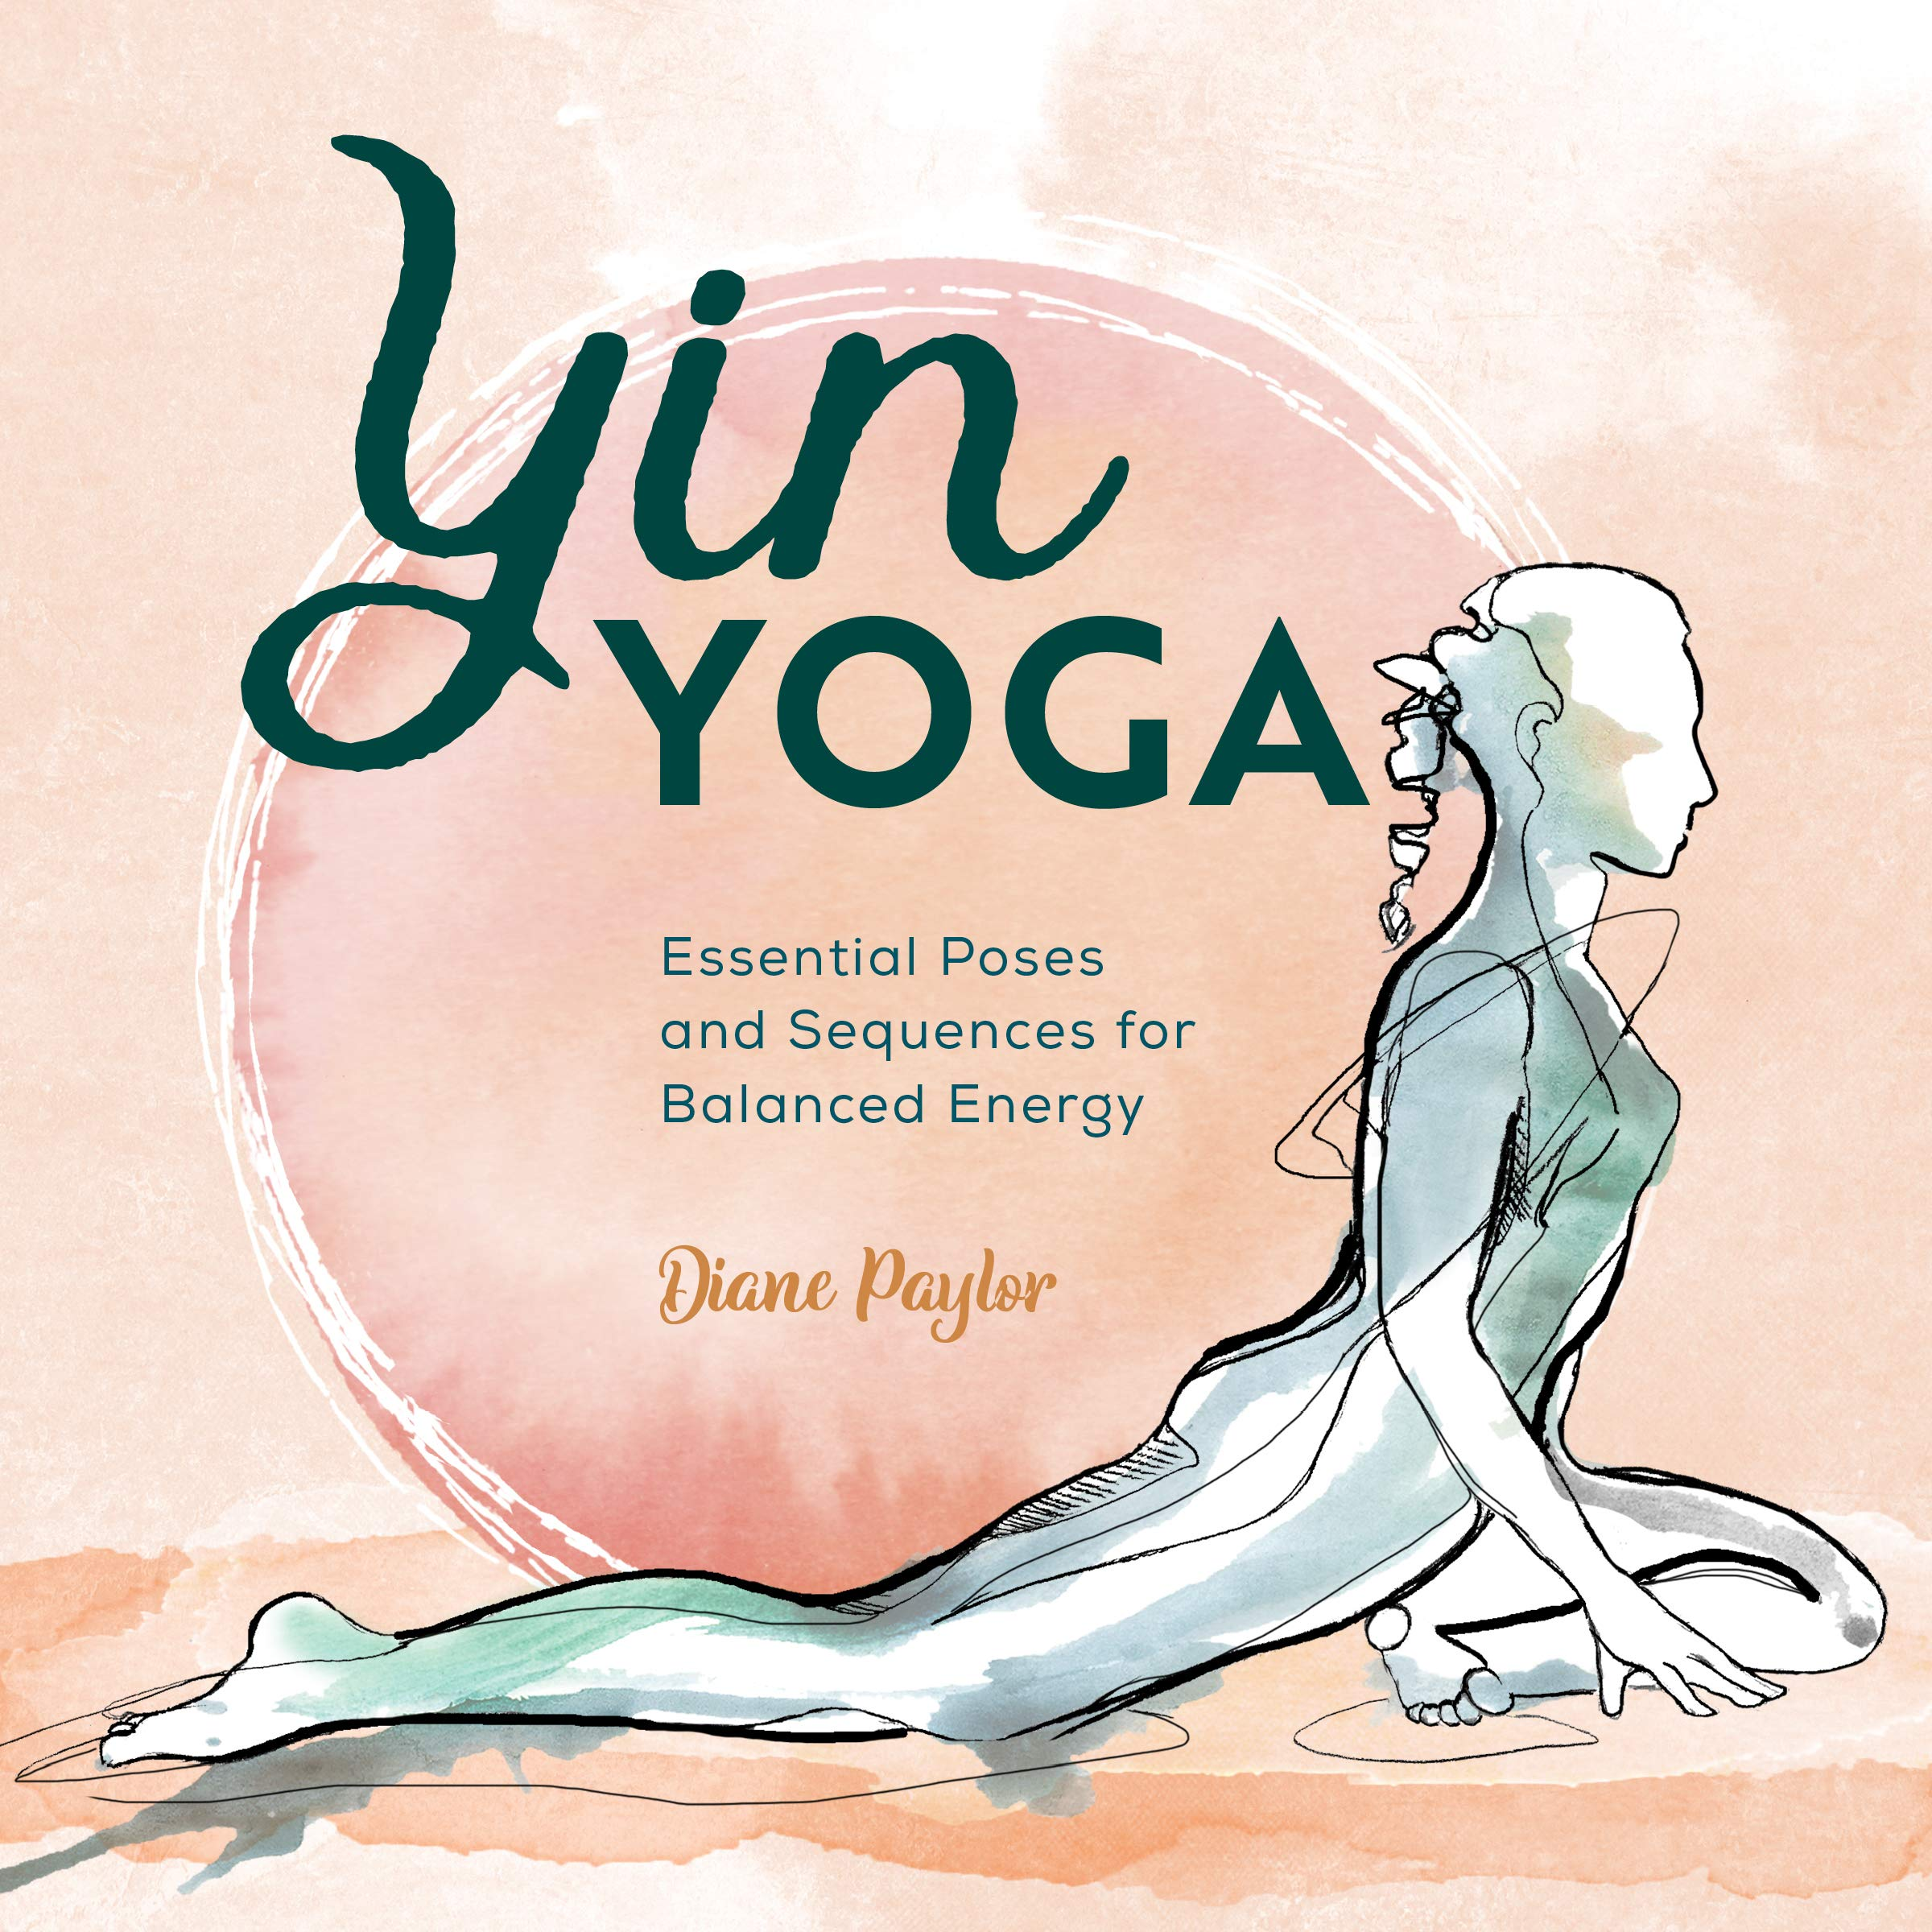 Yin Yoga Essential Poses And Sequences For Balanced Energy Paylor Diane 9781646112456 Amazon Com Books